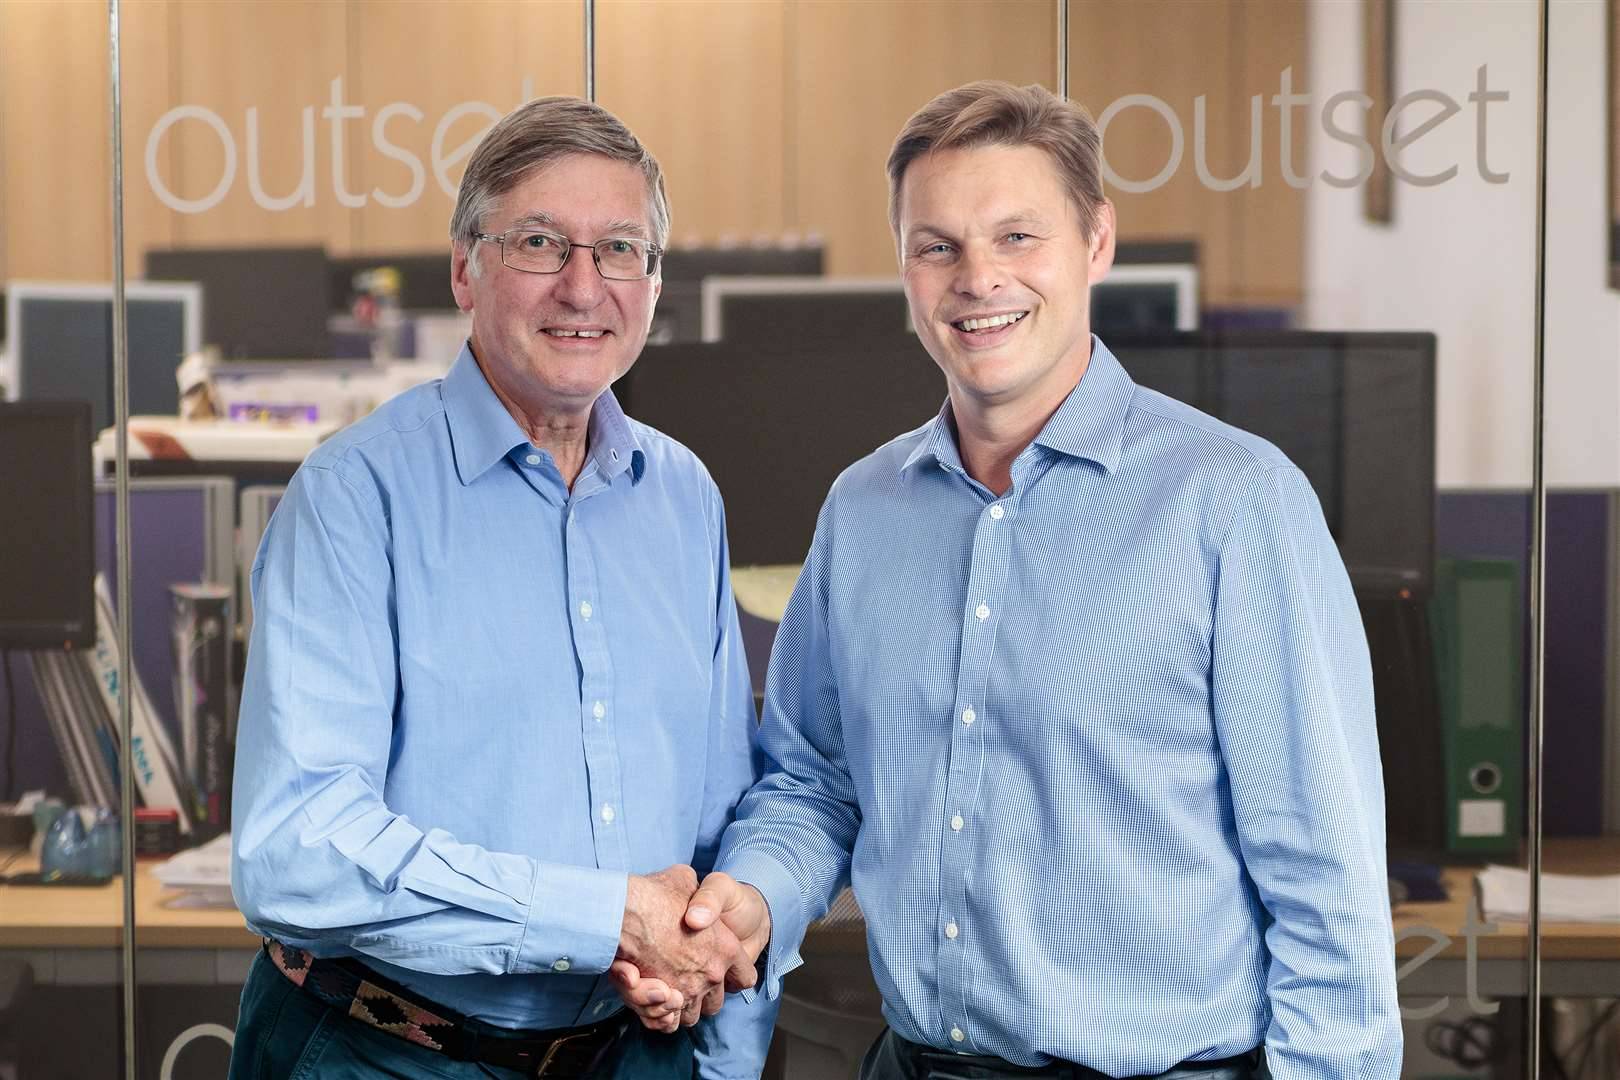 Outset Group chief executive Jonathan Gauton, right, shakes hands on the takeover with Nicholas Moore